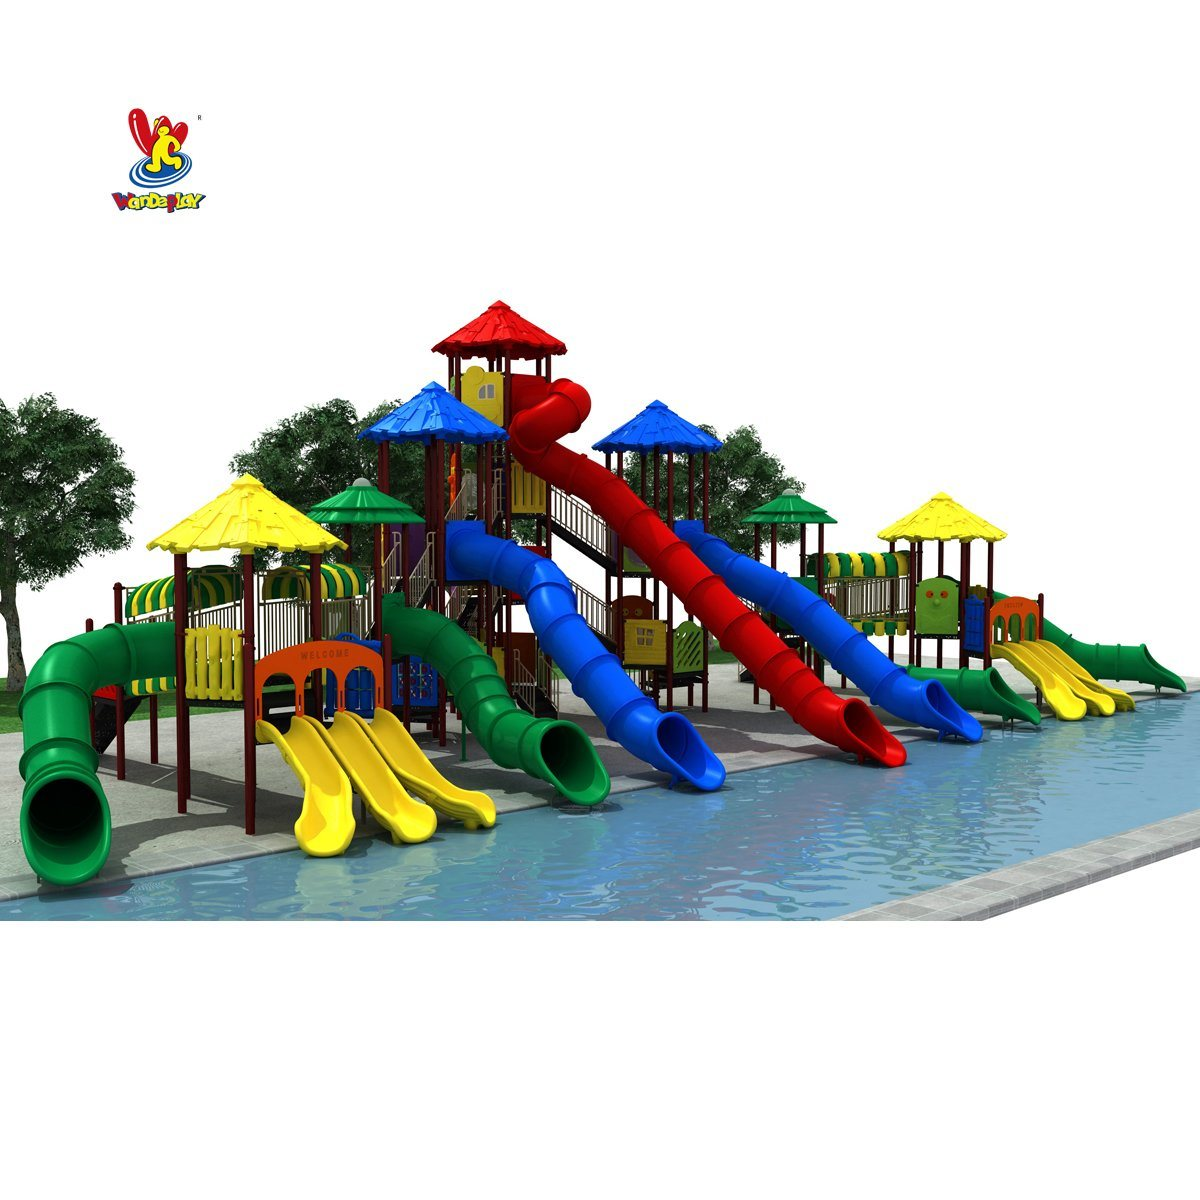 GS TUV Standard Plastic Toy Kids Slides Outdoor Amusement Park Swimming Pool Playsets Children Water Park Games Playground Equipment